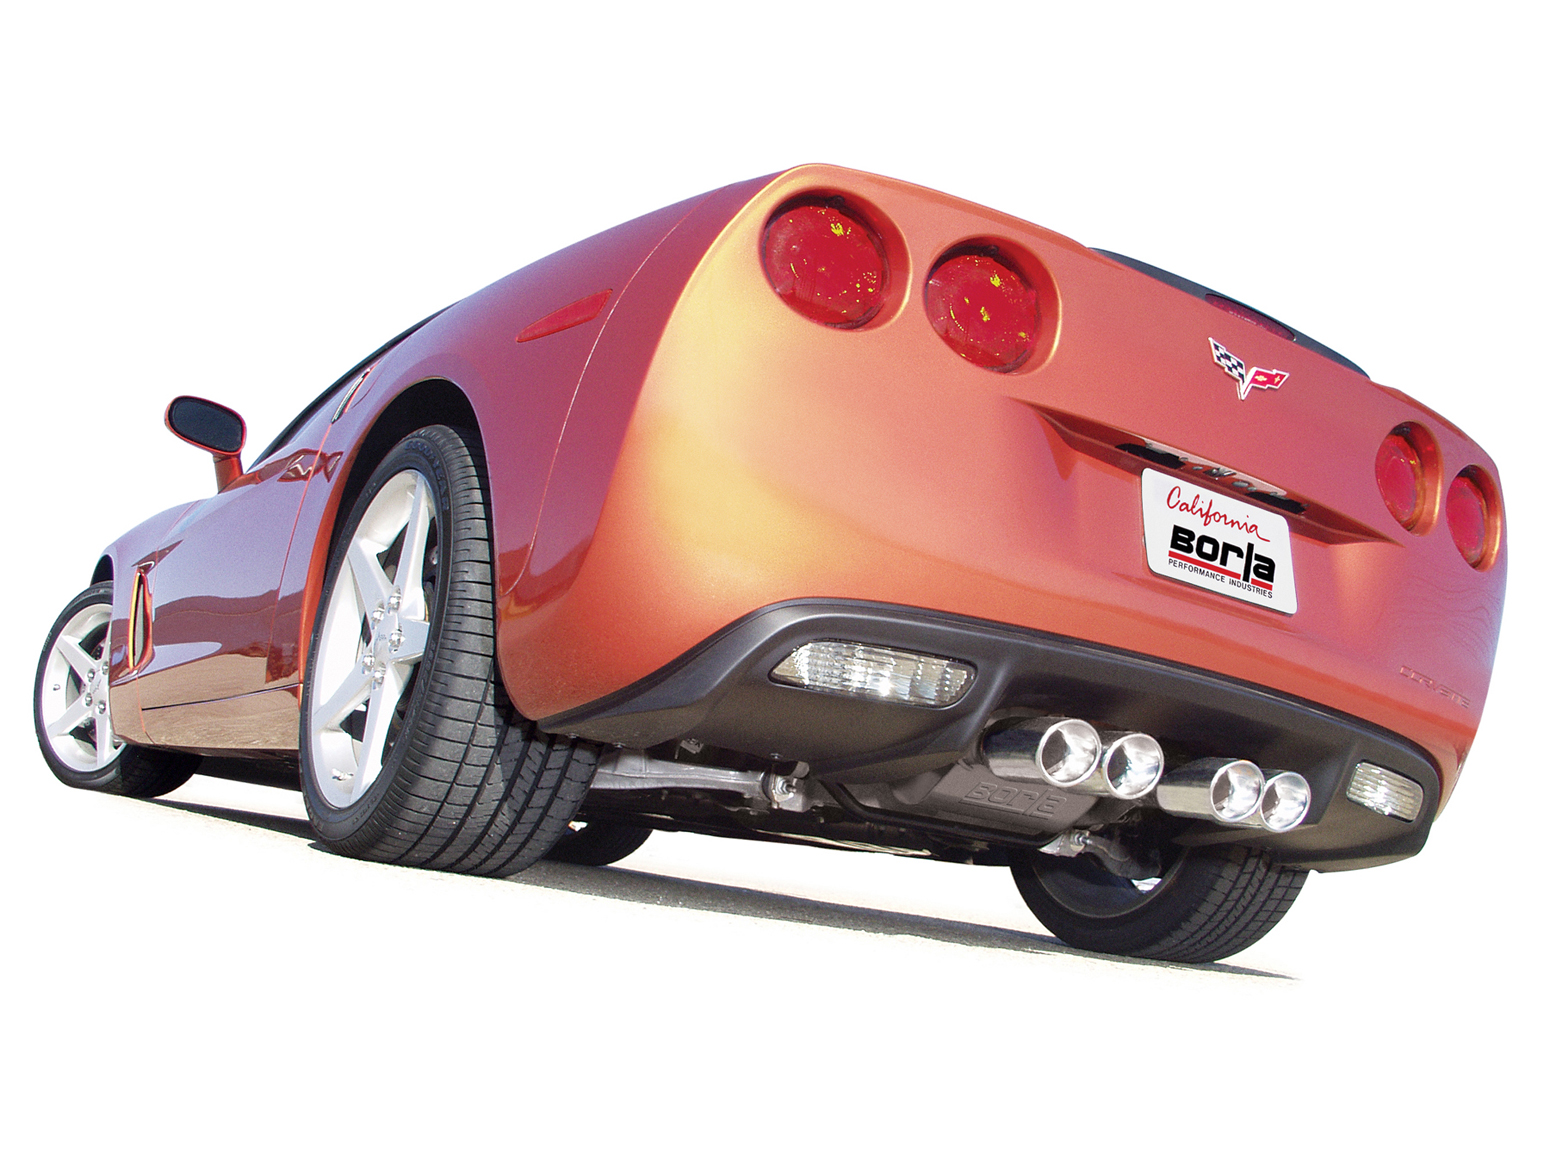 corvette exhaust system, corvette borla exhaust